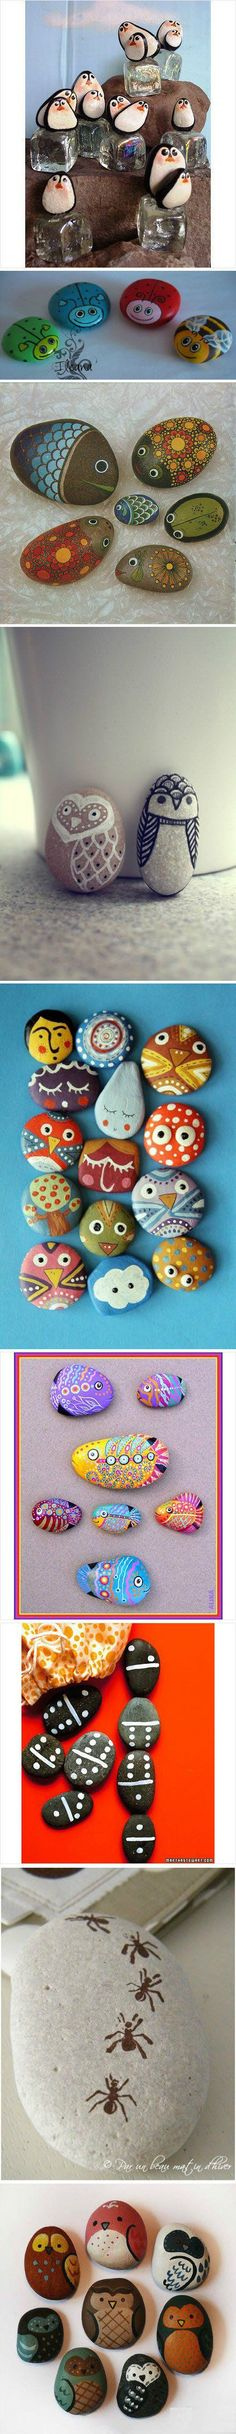 My girls painted rocks every summer. They are teens now, but maybe we can paint a few more. Too cute!